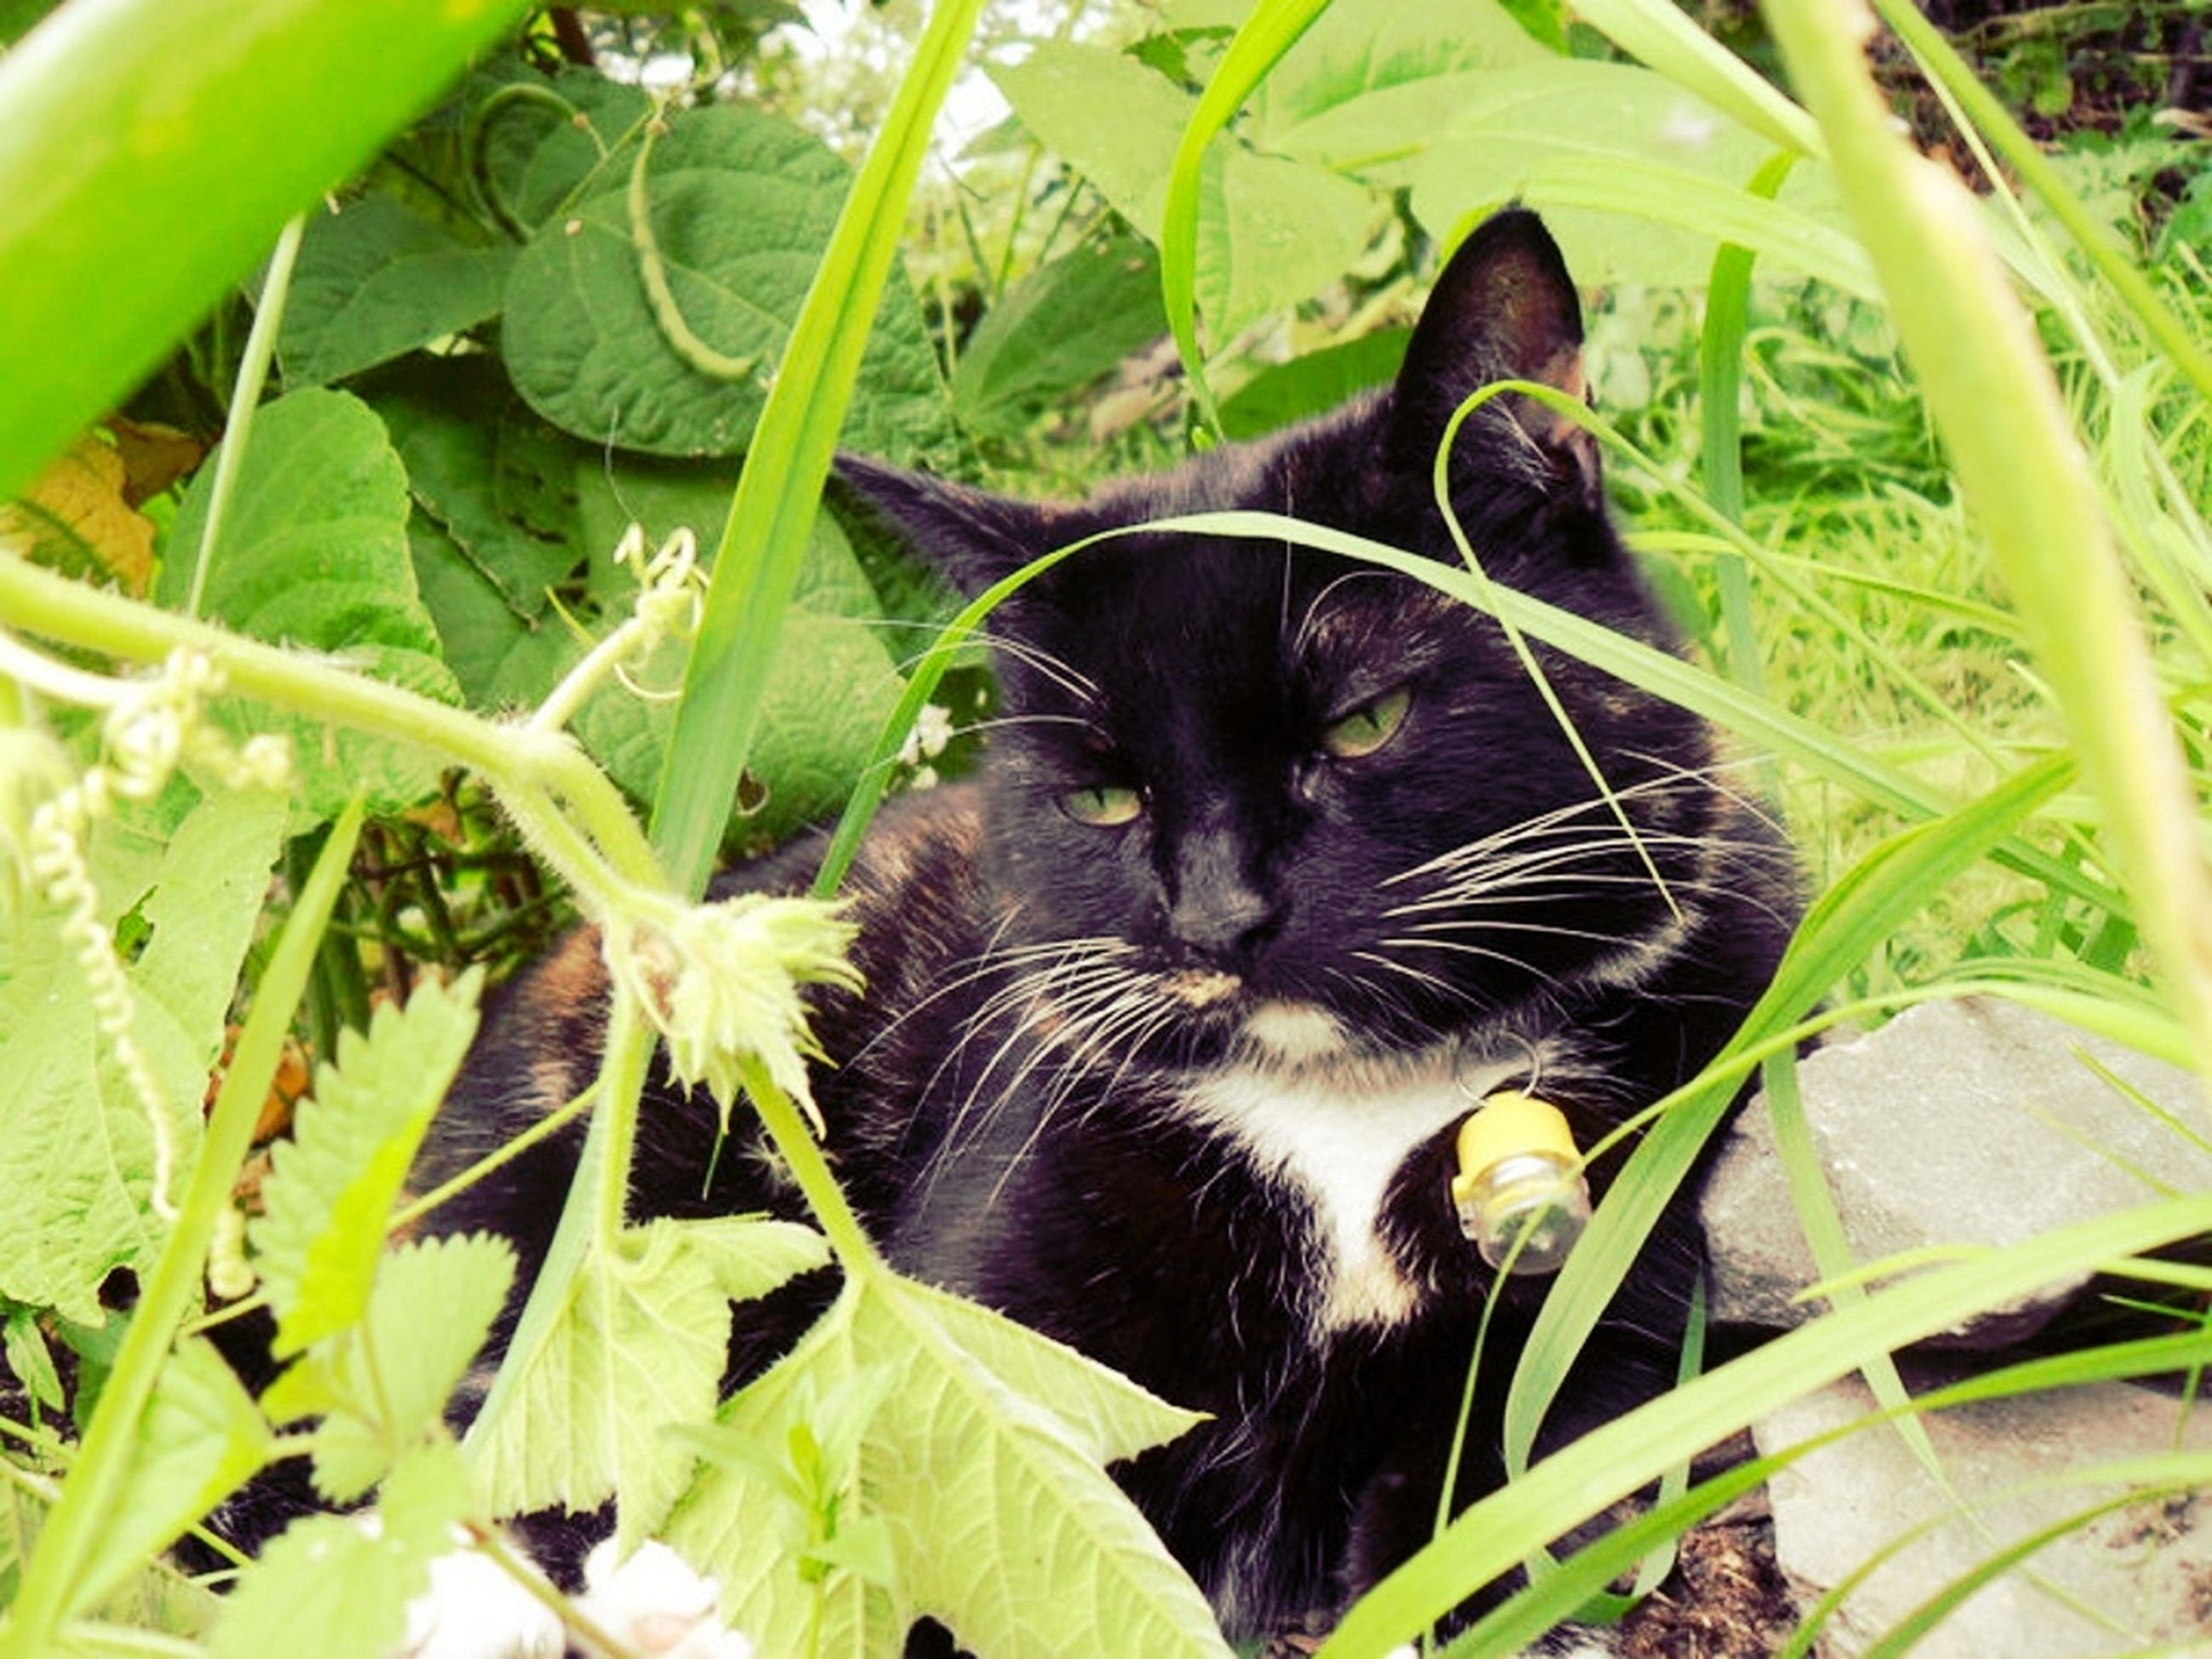 animal themes, one animal, domestic cat, pets, cat, mammal, domestic animals, leaf, plant, feline, whisker, growth, high angle view, green color, close-up, black color, nature, grass, day, looking at camera